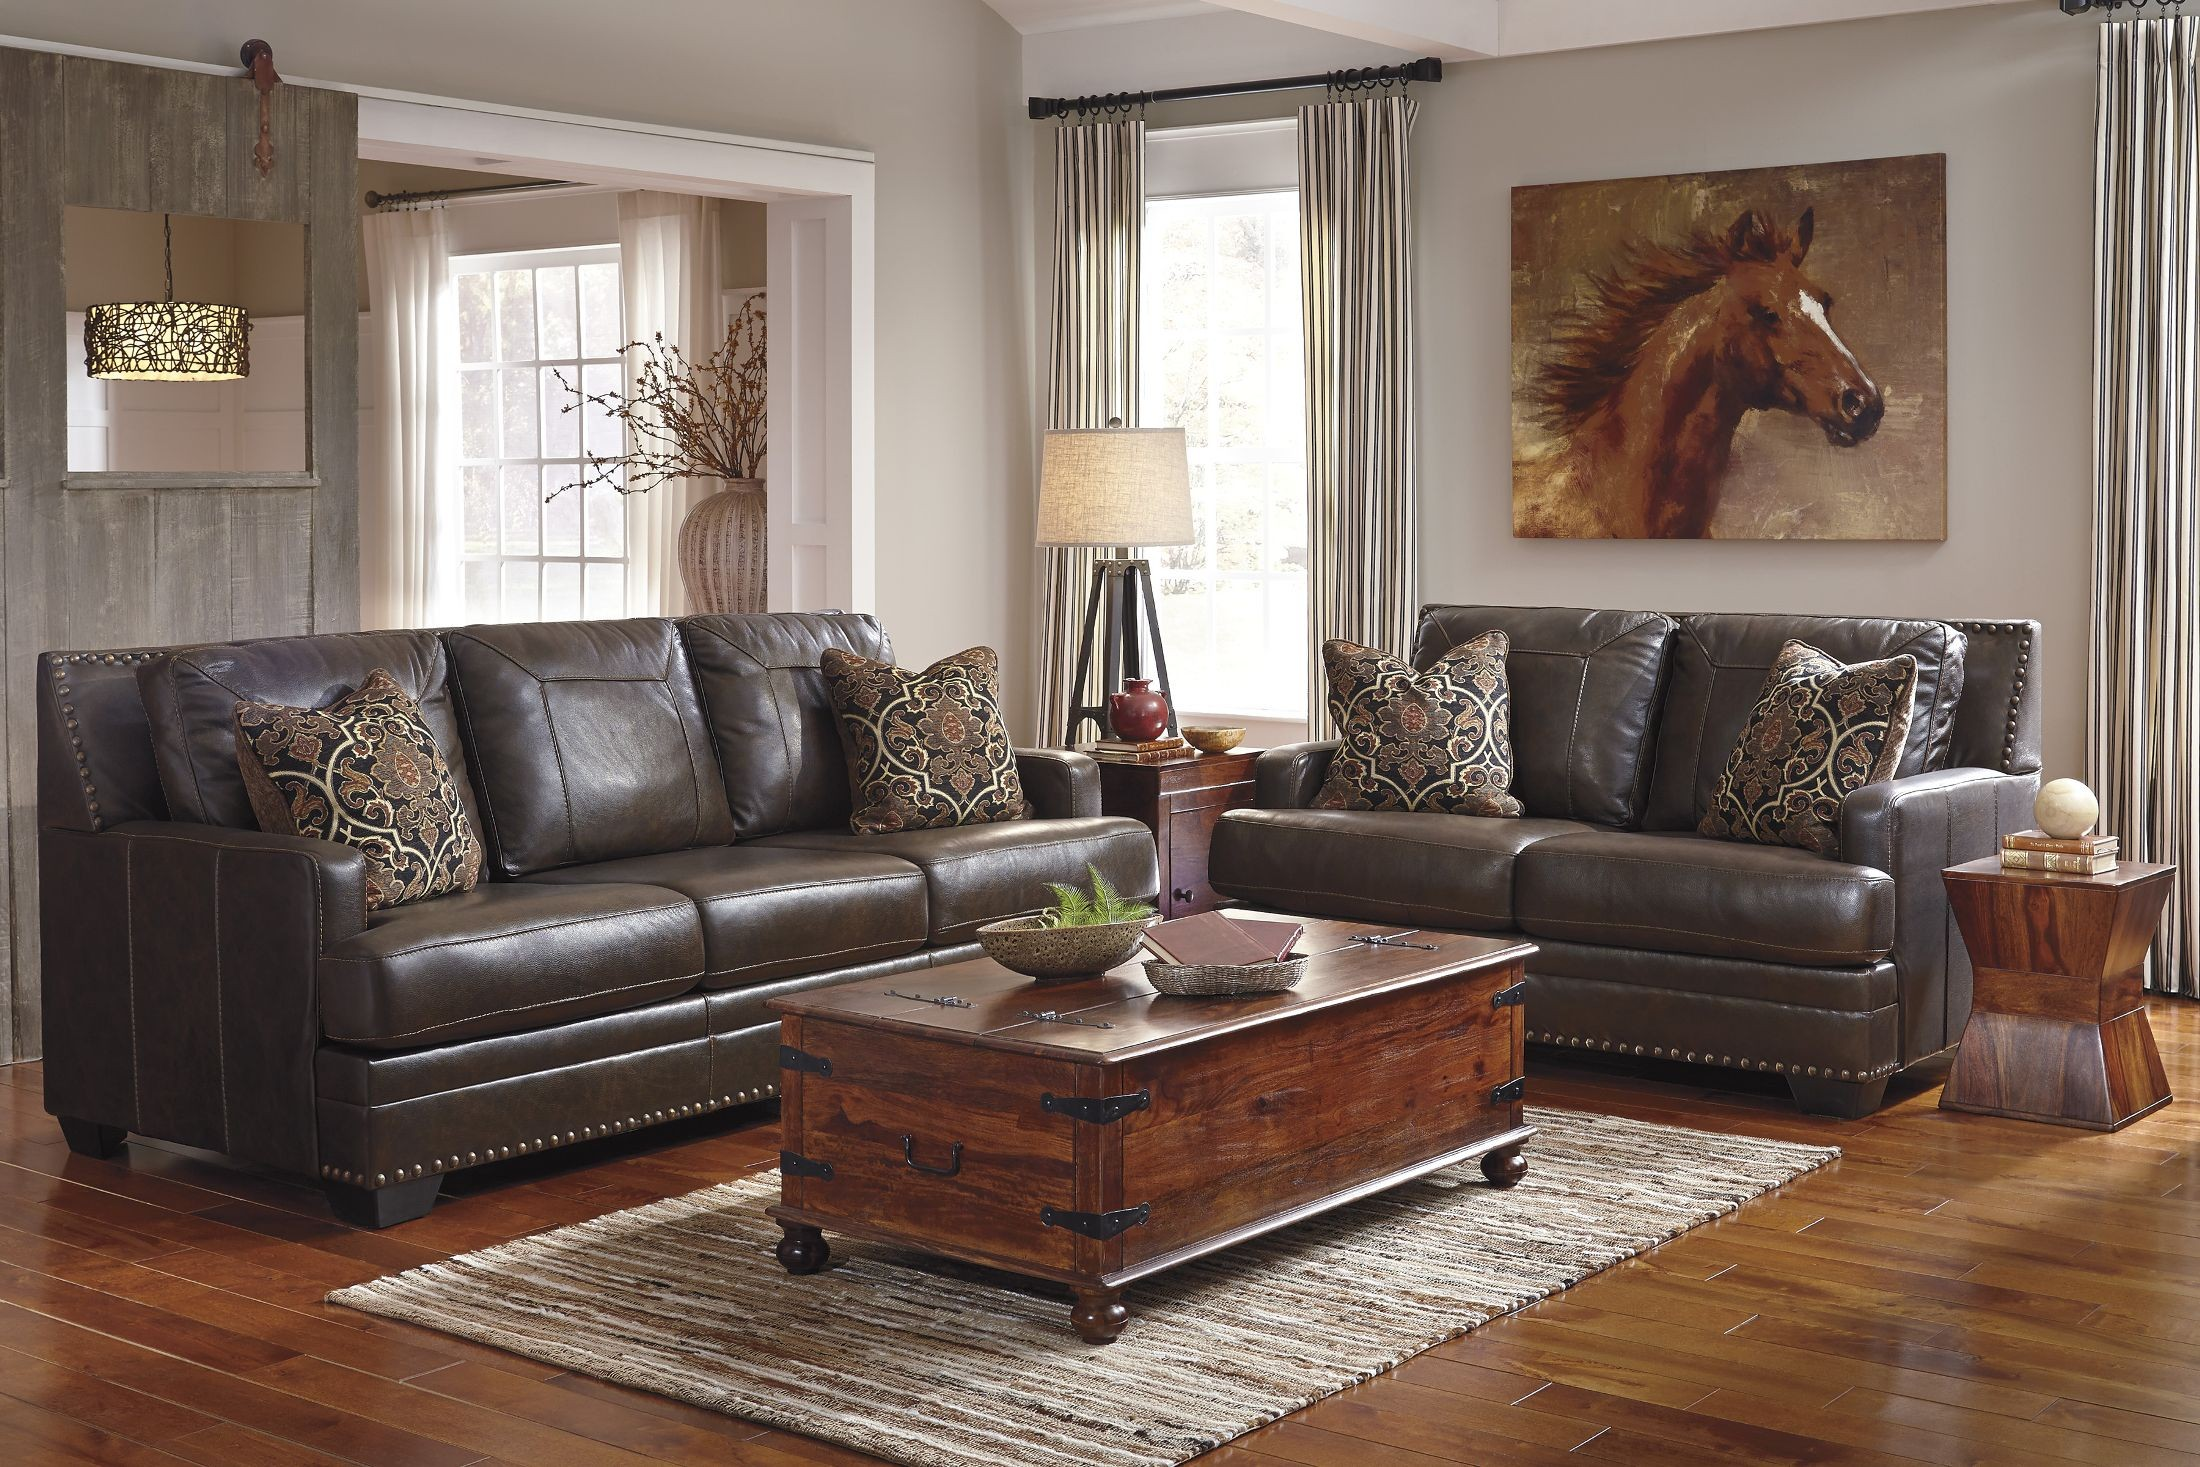 Corvan Antique Queen Sofa Sleeper From Ashley (6910339) | Coleman Furniture